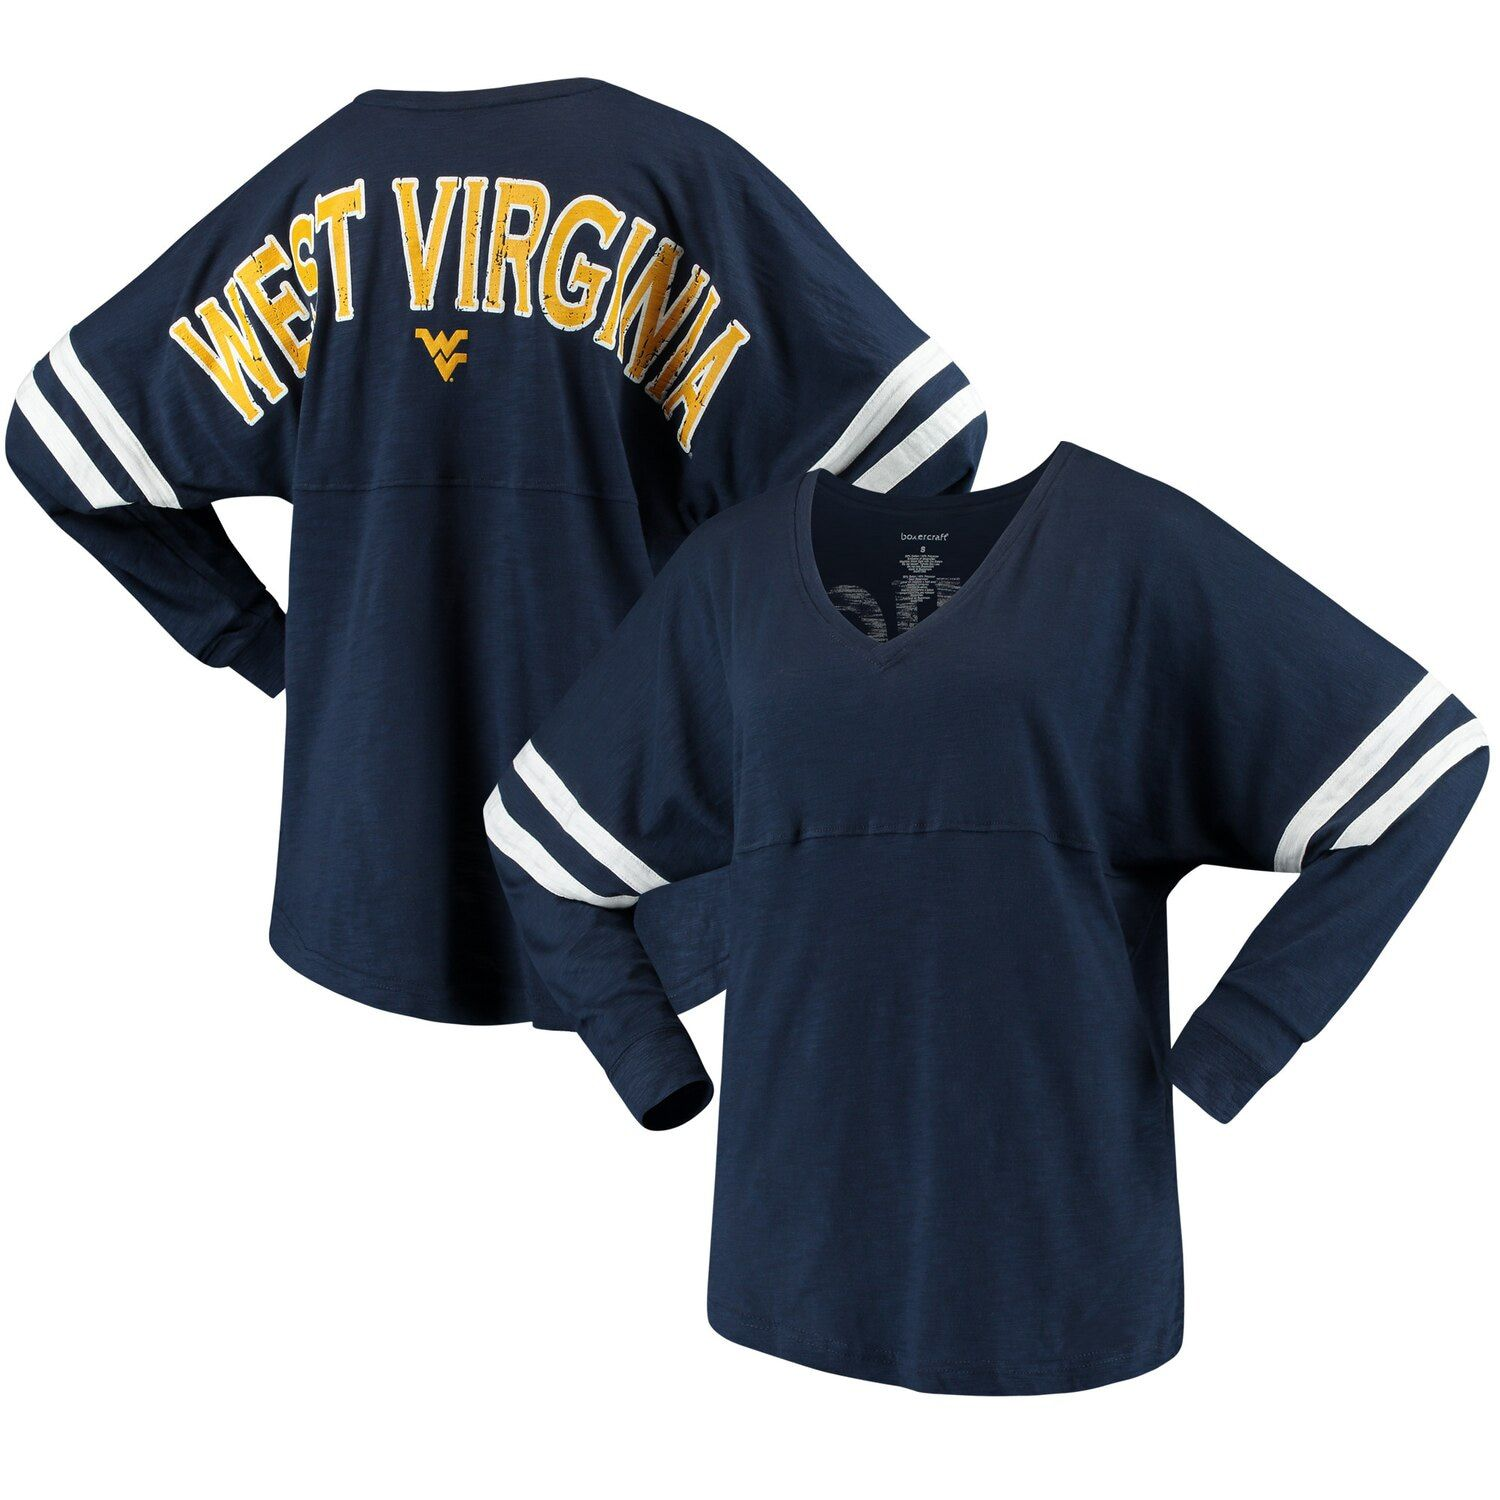 Women's Navy West Virginia Mountaineers Pom Pom V-Neck Long Sleeve T-Shirt #westvirginia